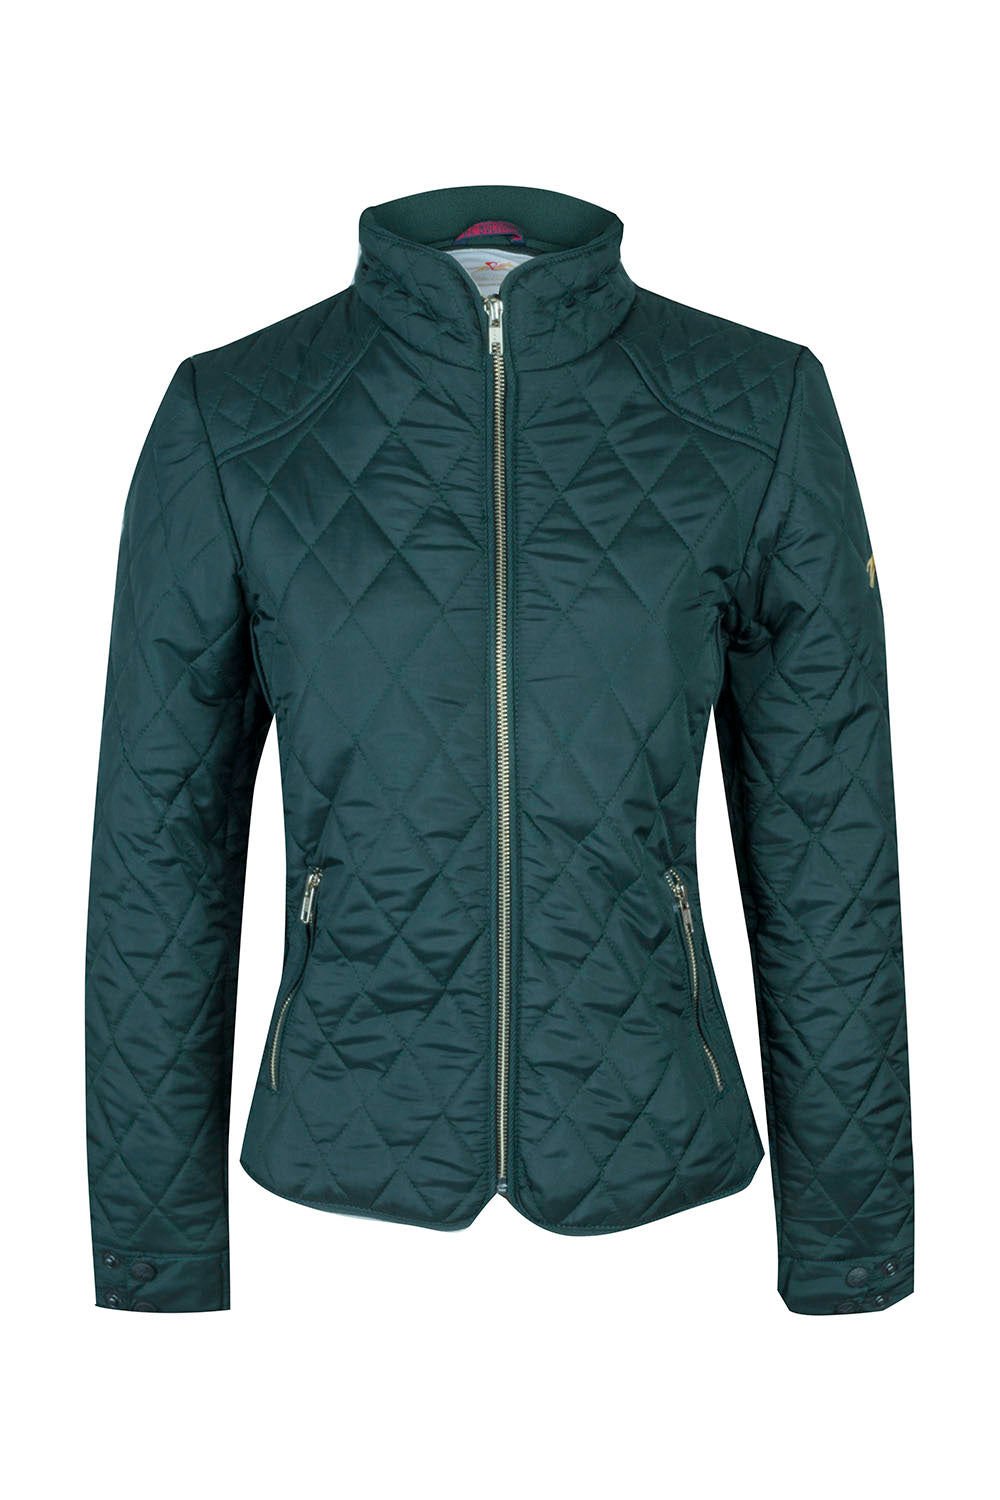 A Little Bit Racey - Jacket - Racing Green - front -  PC Racewear